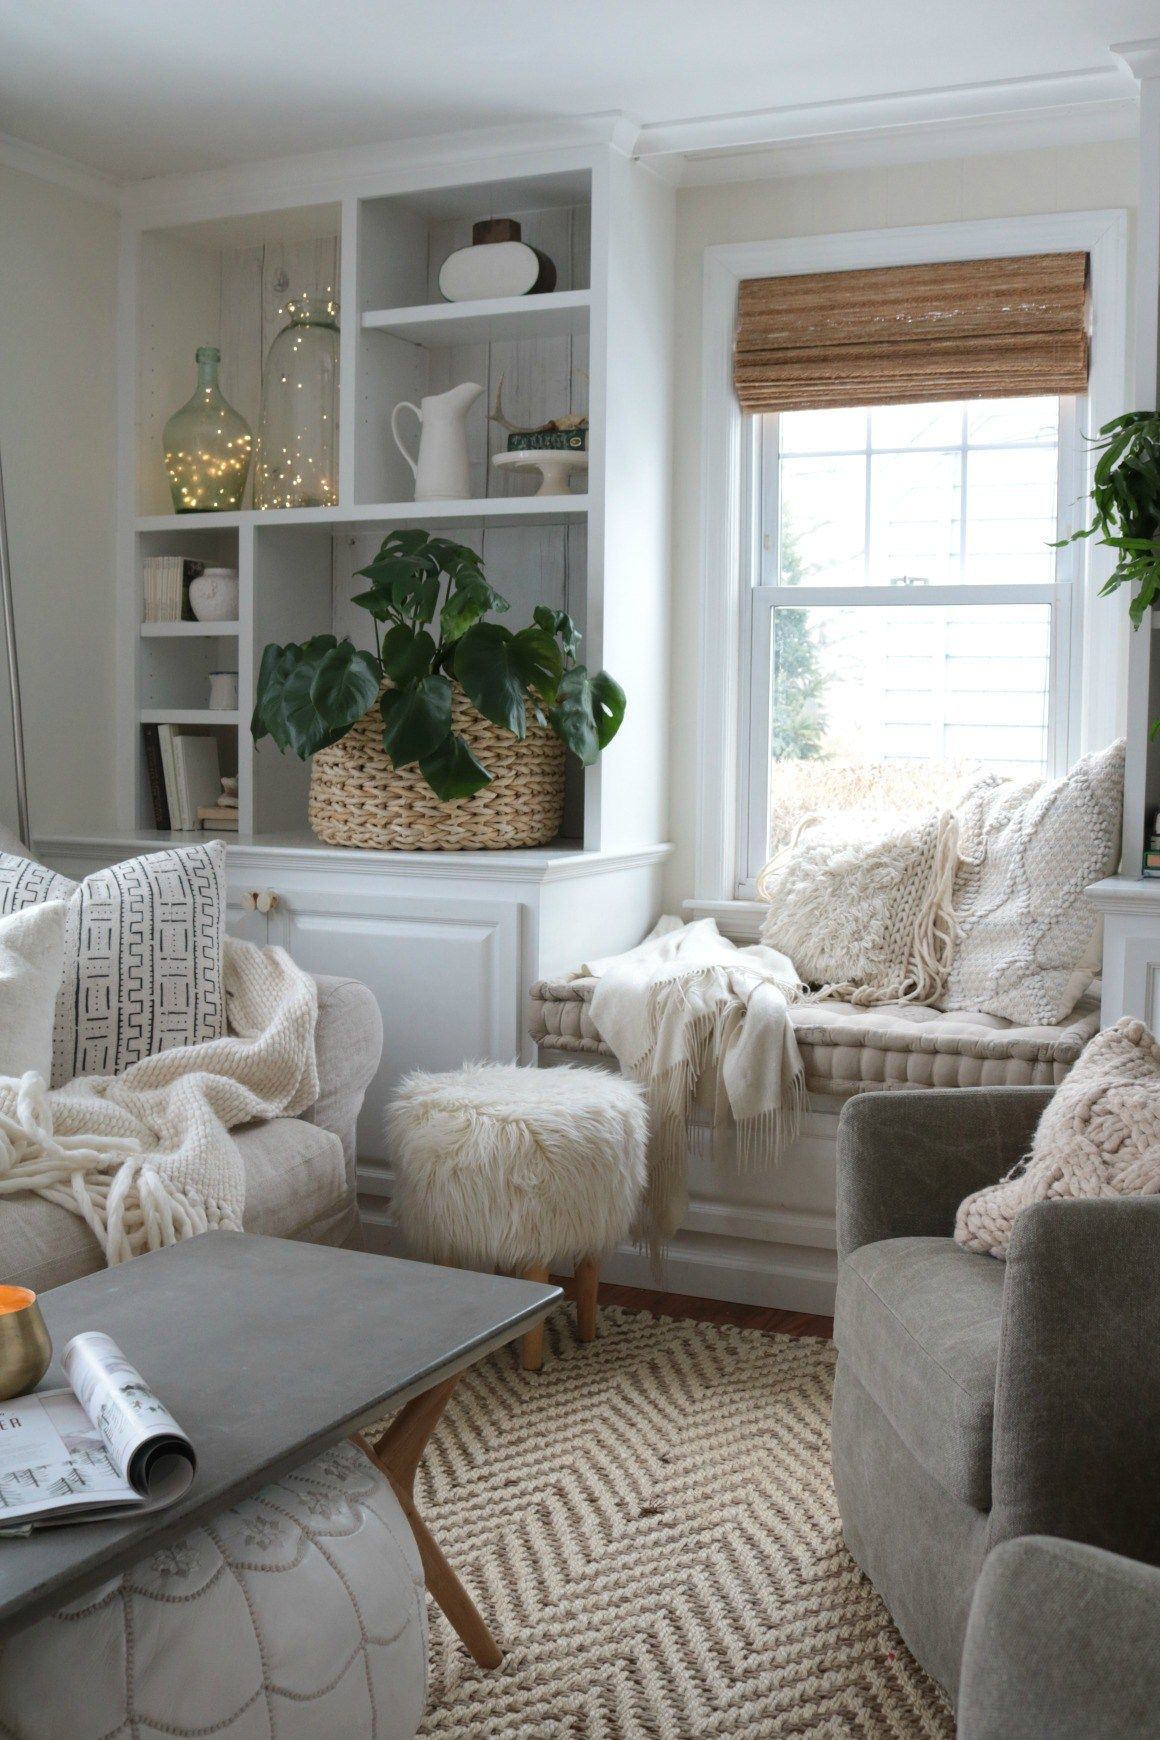 How To Have A Cozy Home 4 Simple Tips Nesting With G